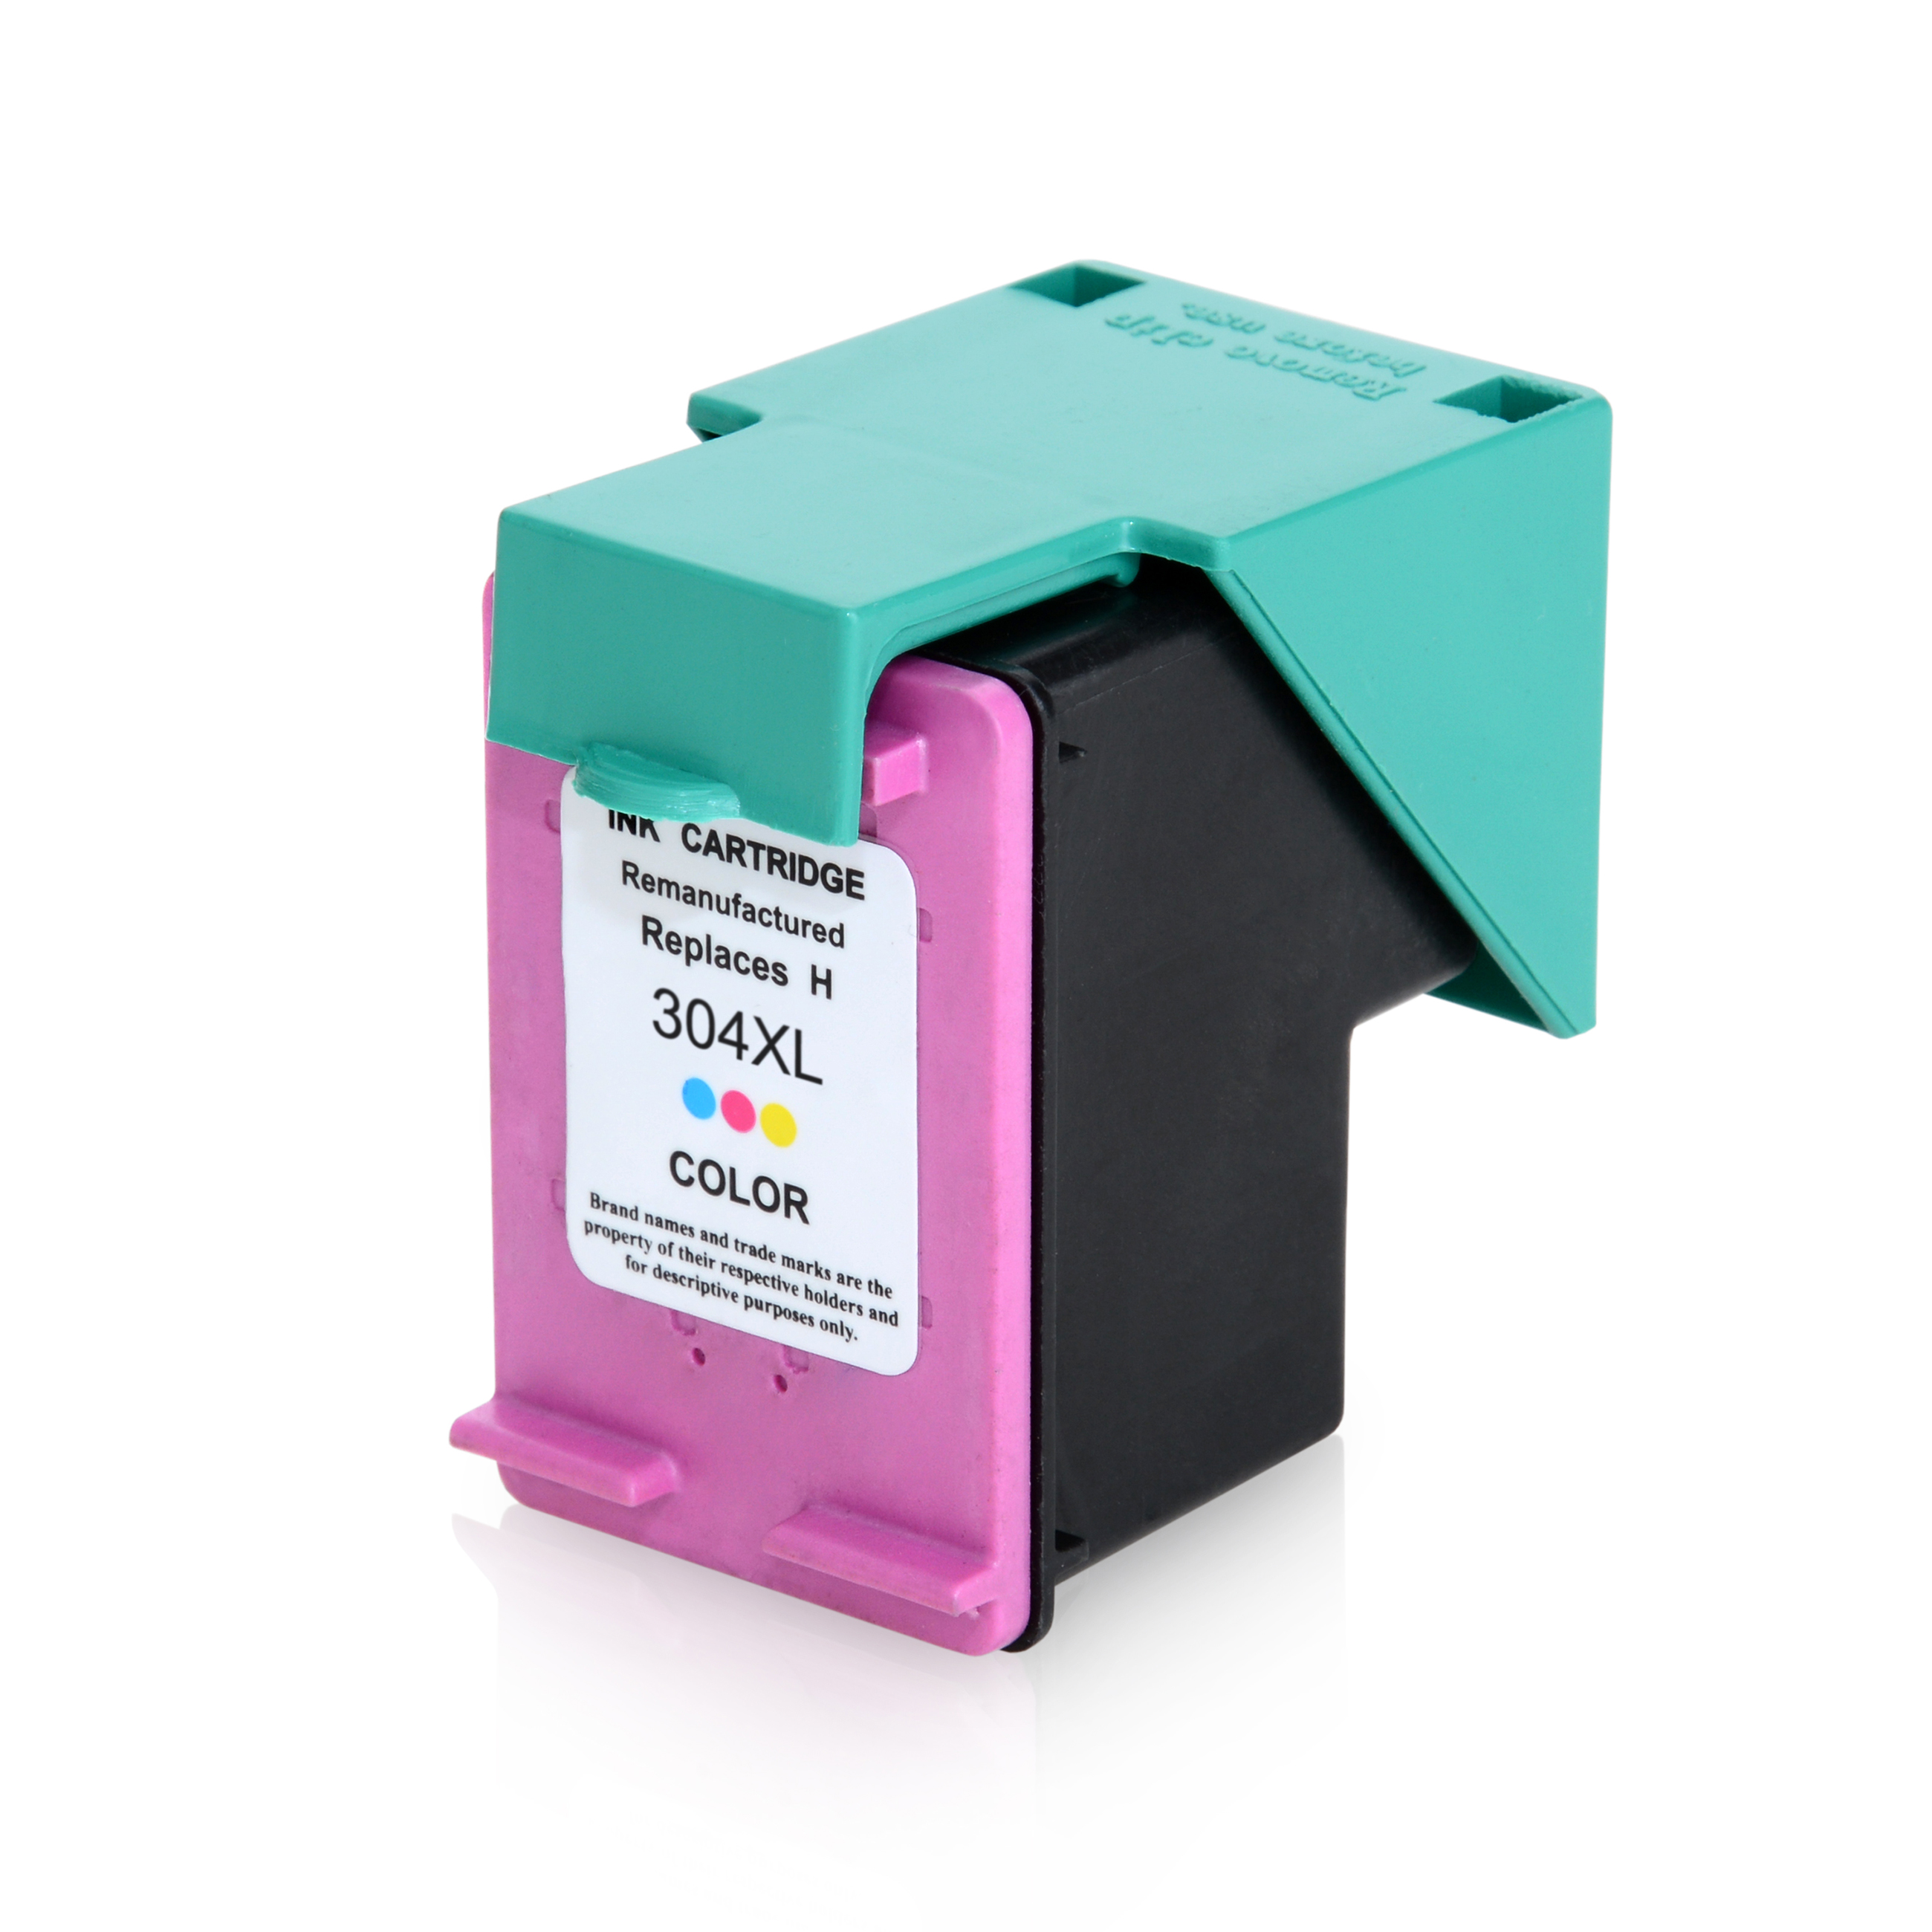 ASC-Premium-Tintenpatrone für HP DeskJet 3720 seagrass color XL-Version DeskJet 3720 seagrass DeskJet3720seagrass